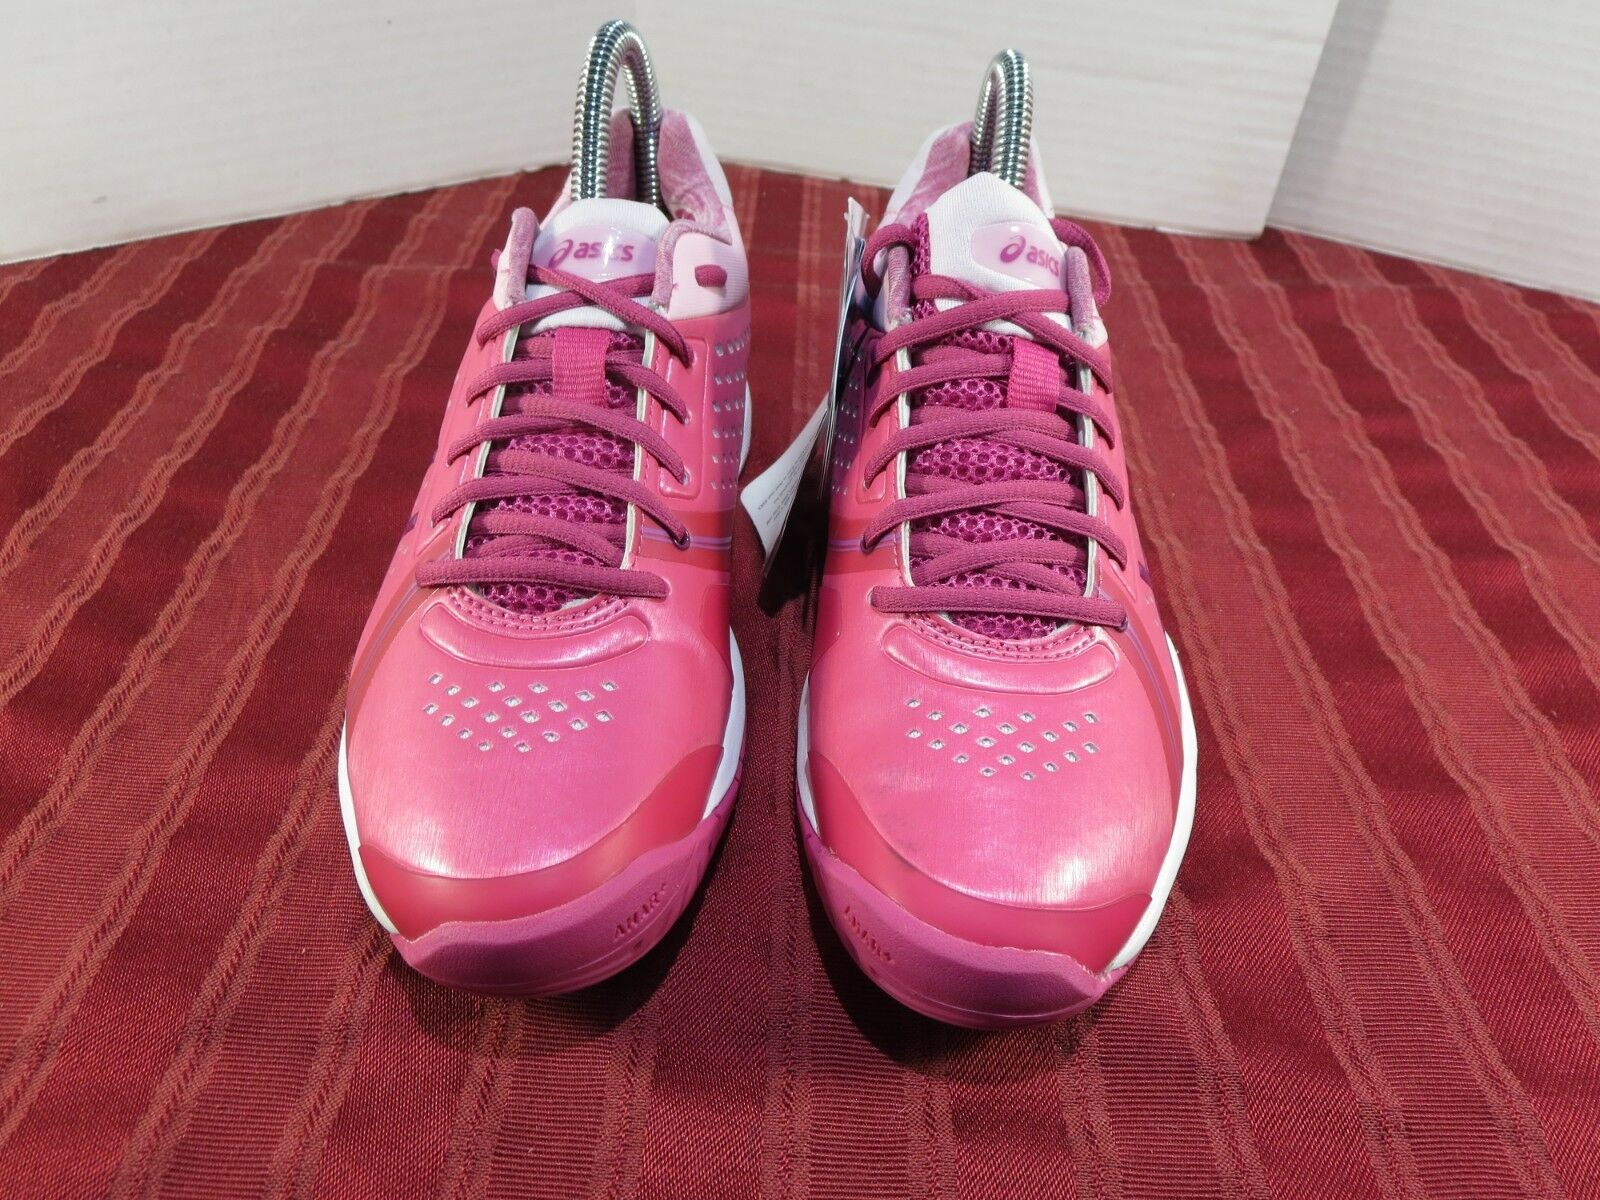 Asics Gel-Court Bella Fitness CrossFit Tennis shoes Women Size 6